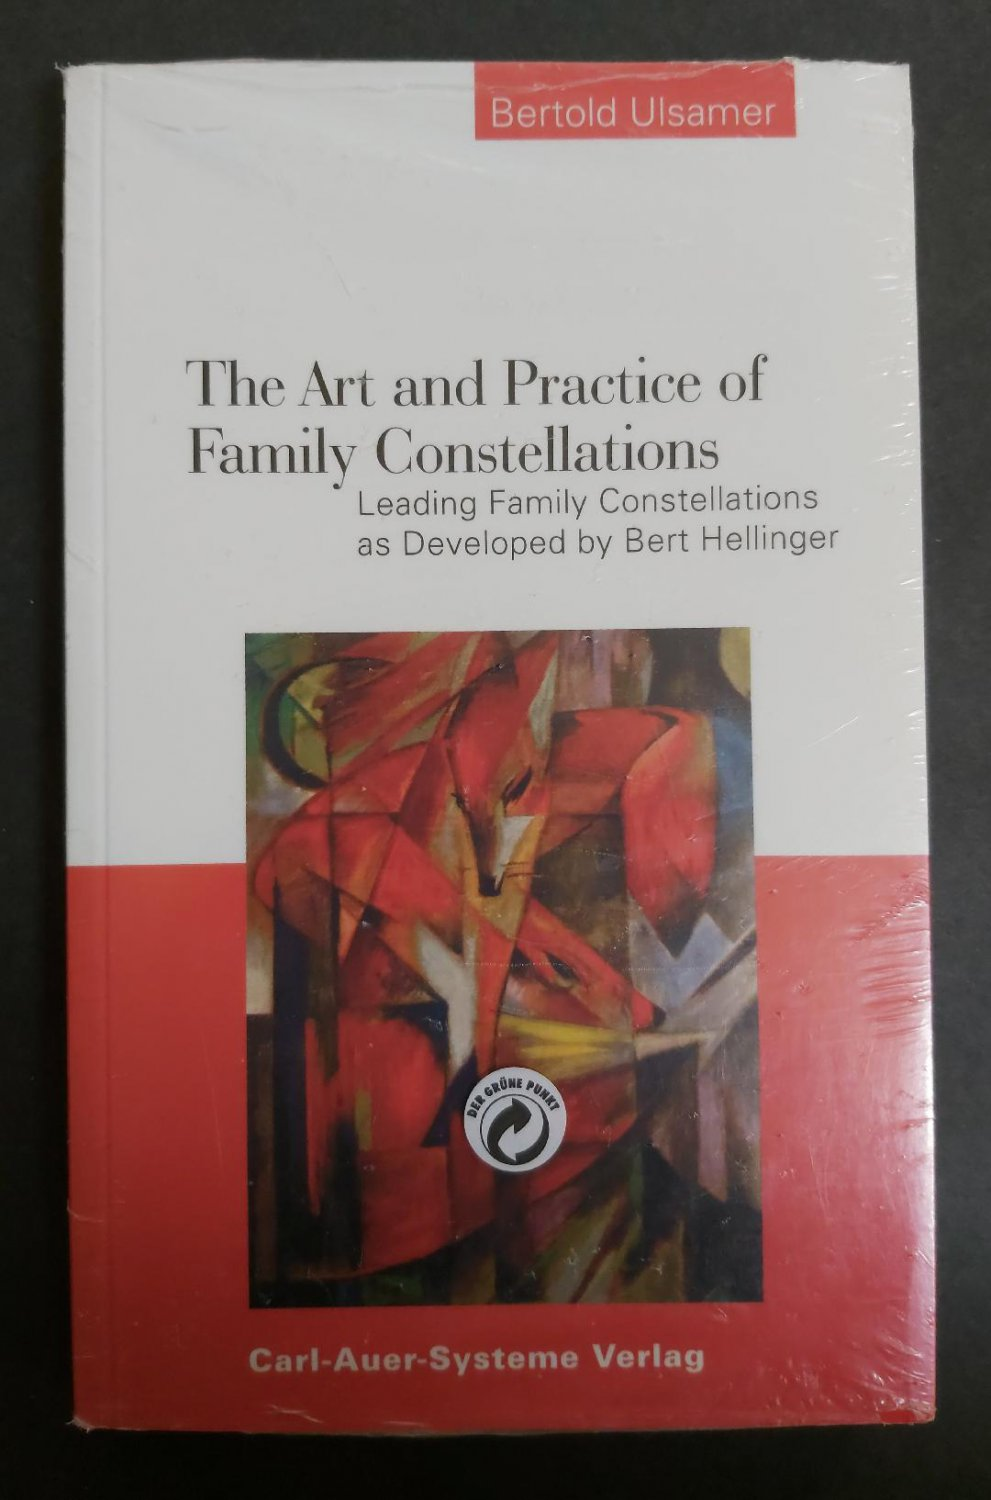 The Art and Practice of Family Constellations: Leading family constellations by Bert Hellinger